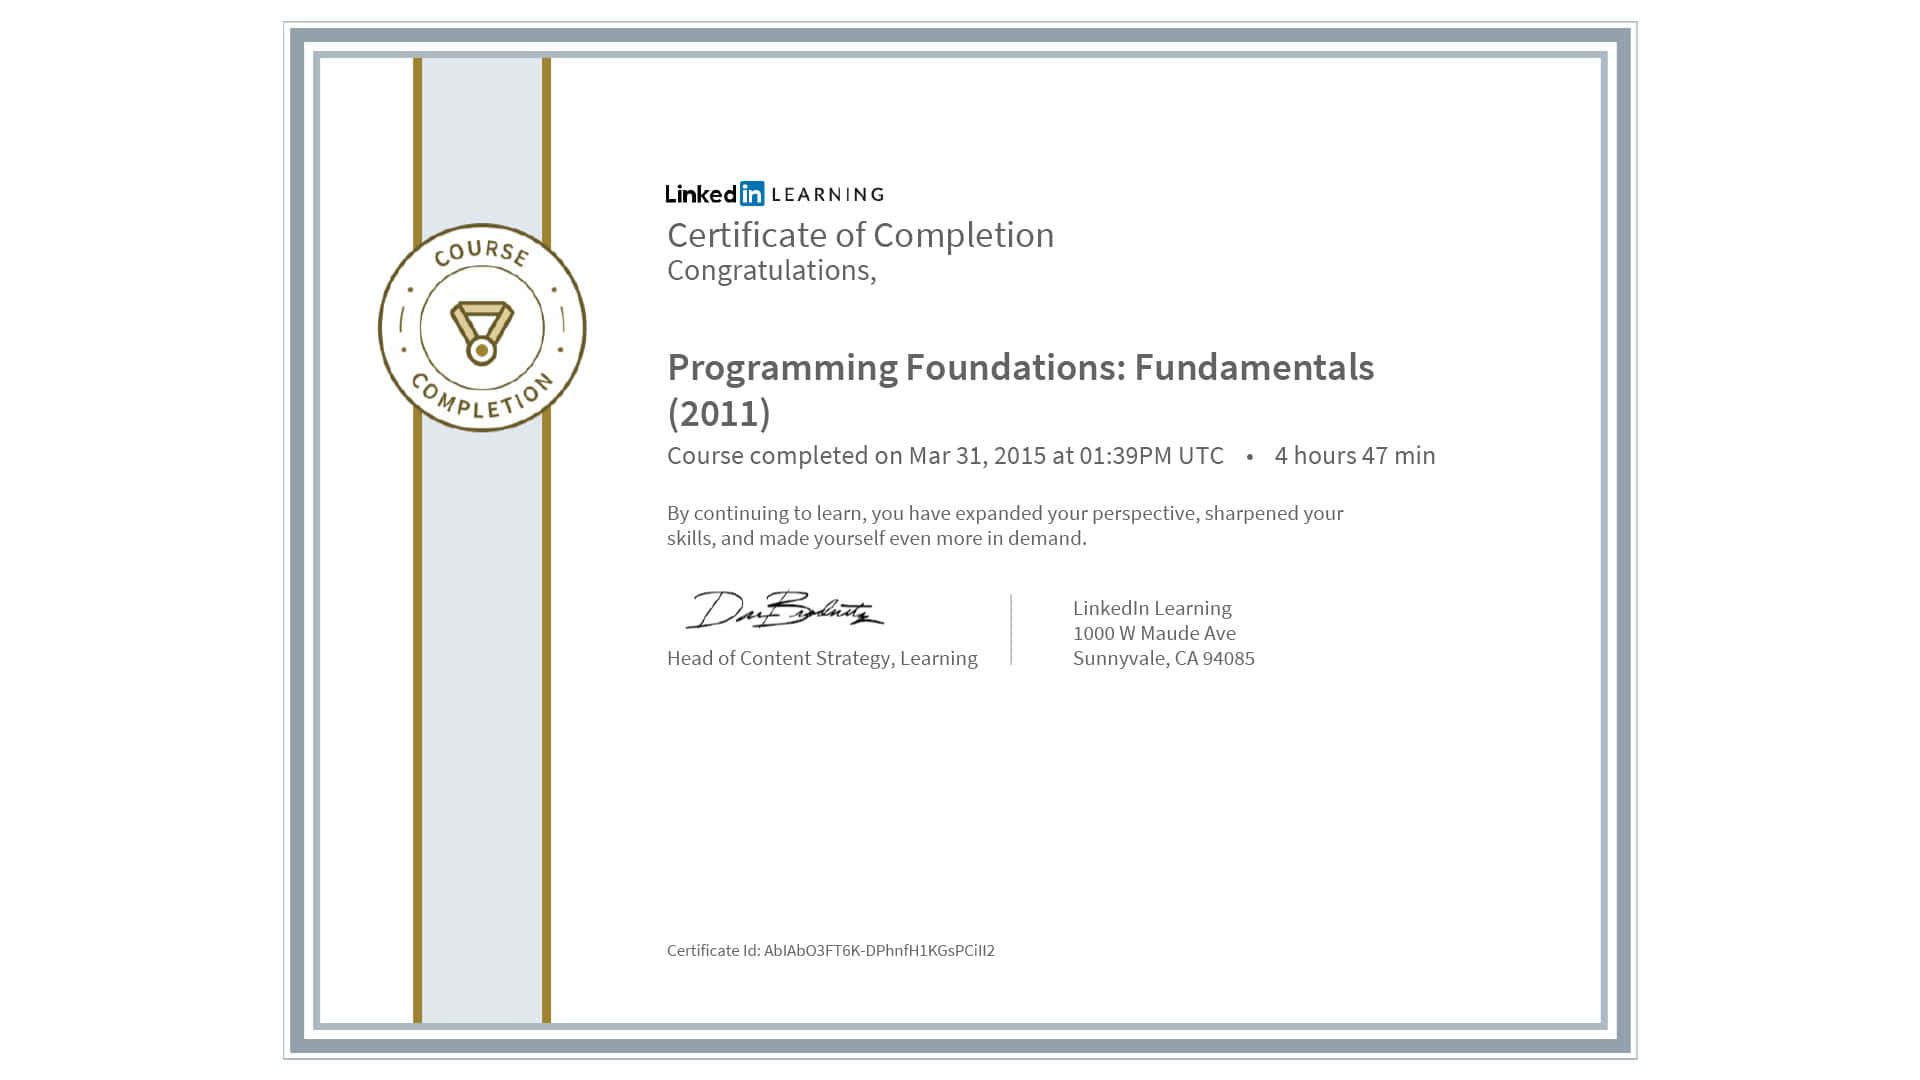 programming-foundations-fundamentals-course-completion-certificate